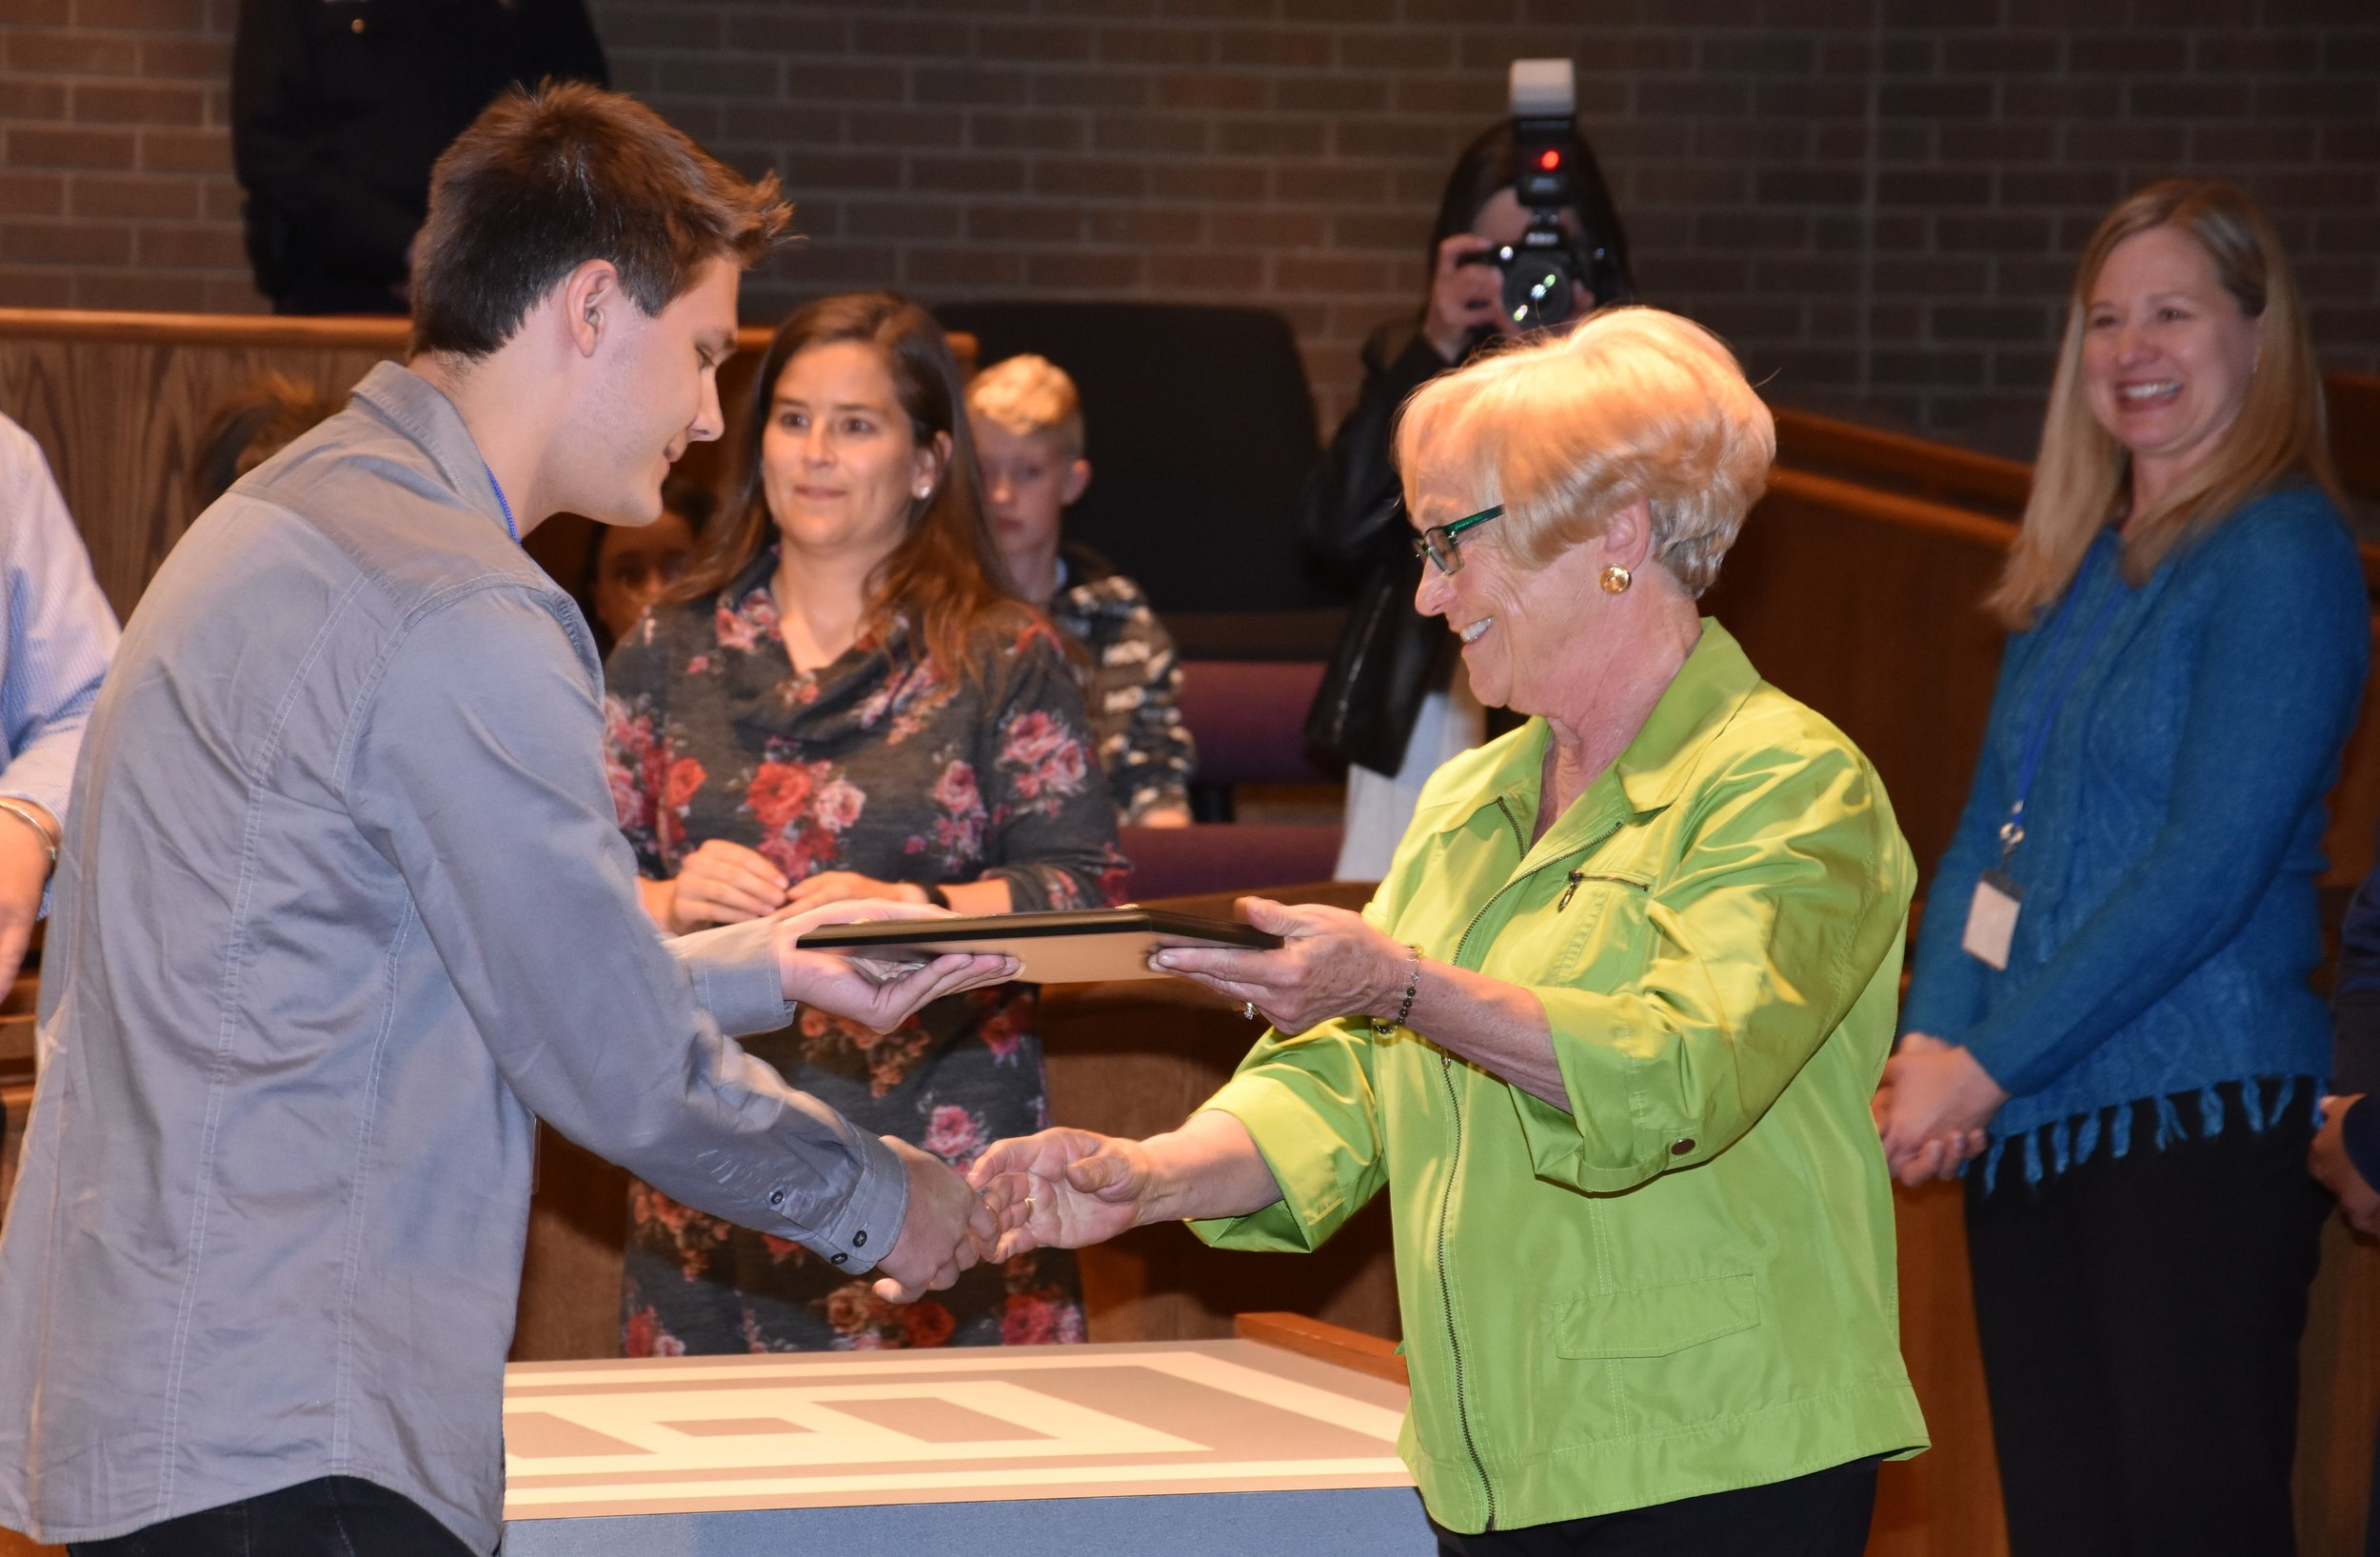 Logan Butler receiving the 2nd Annual Jim Glasmann Memorial Scholarship from Nancy of the Northey Board of Directors